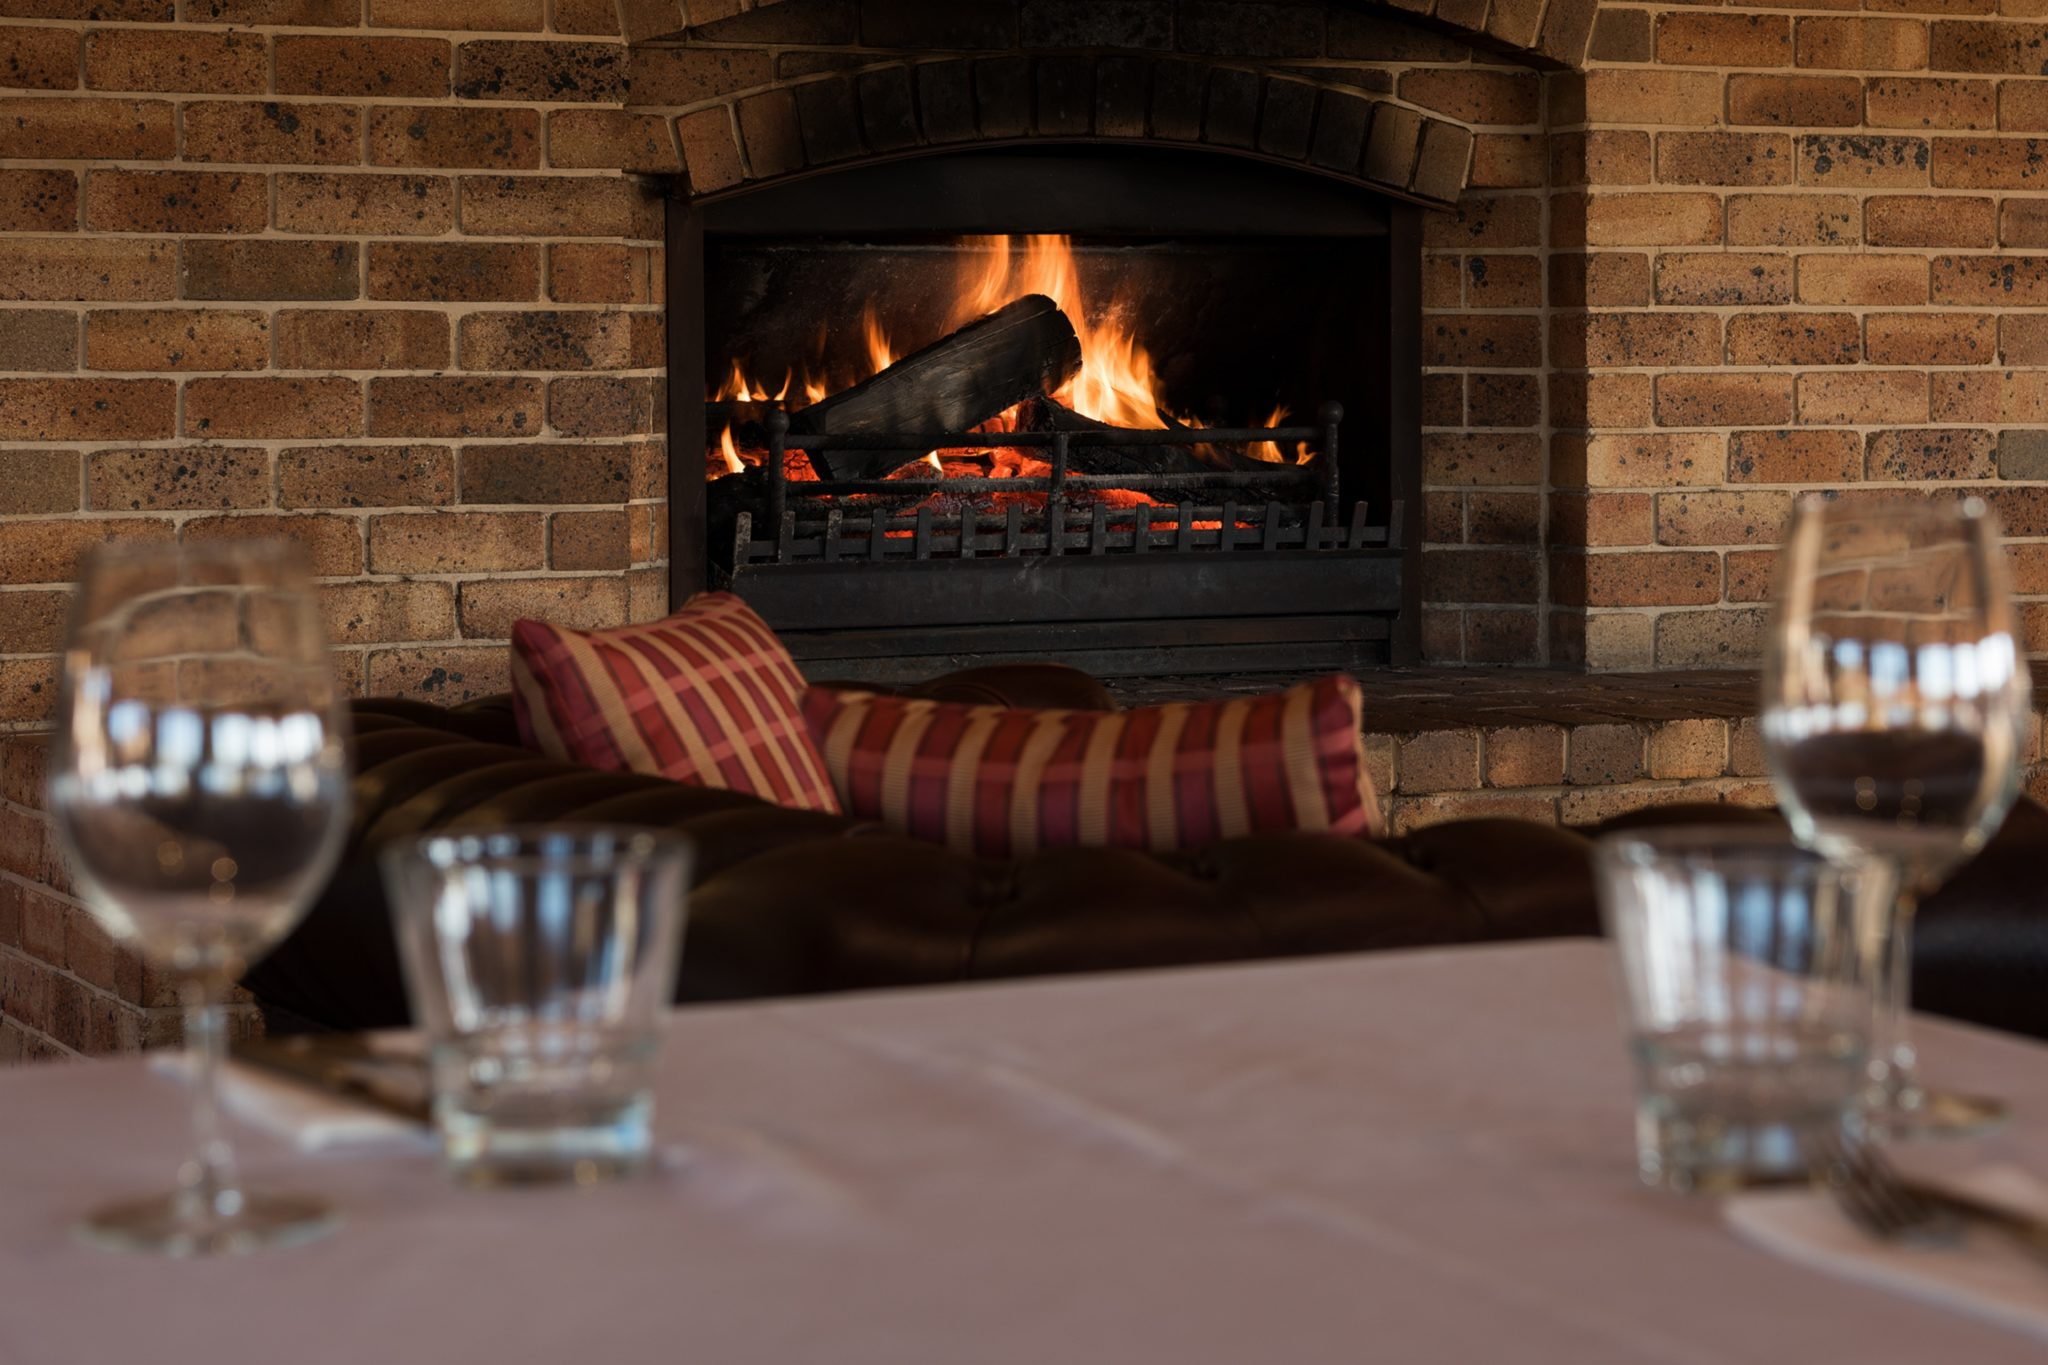 Relax by the fire at the Bowen Inn Motel's Surveyors restaurant for drinks and dinner in Lithgow